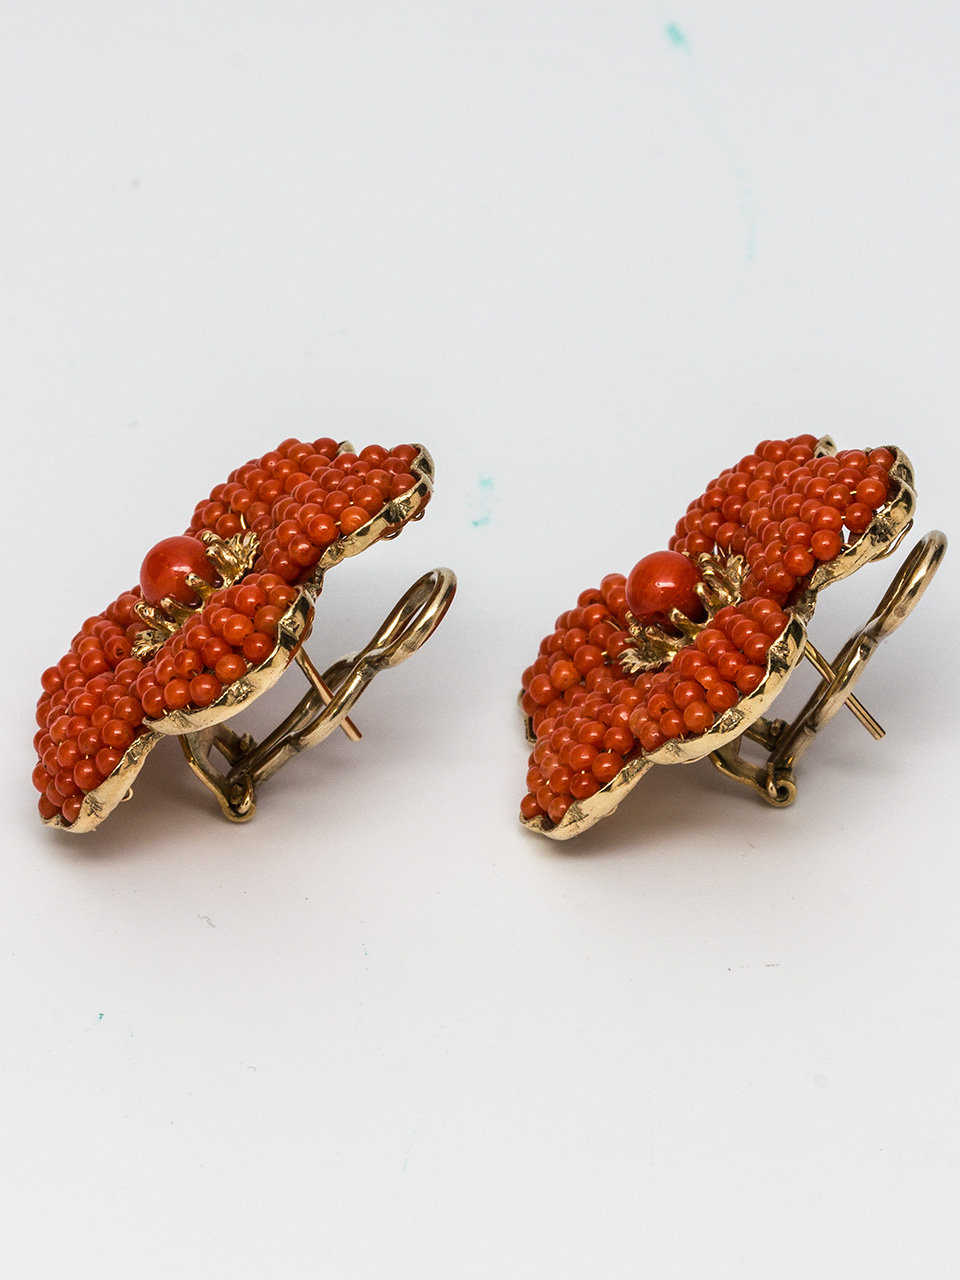 14K YG & Coral Earrings circa 1940's